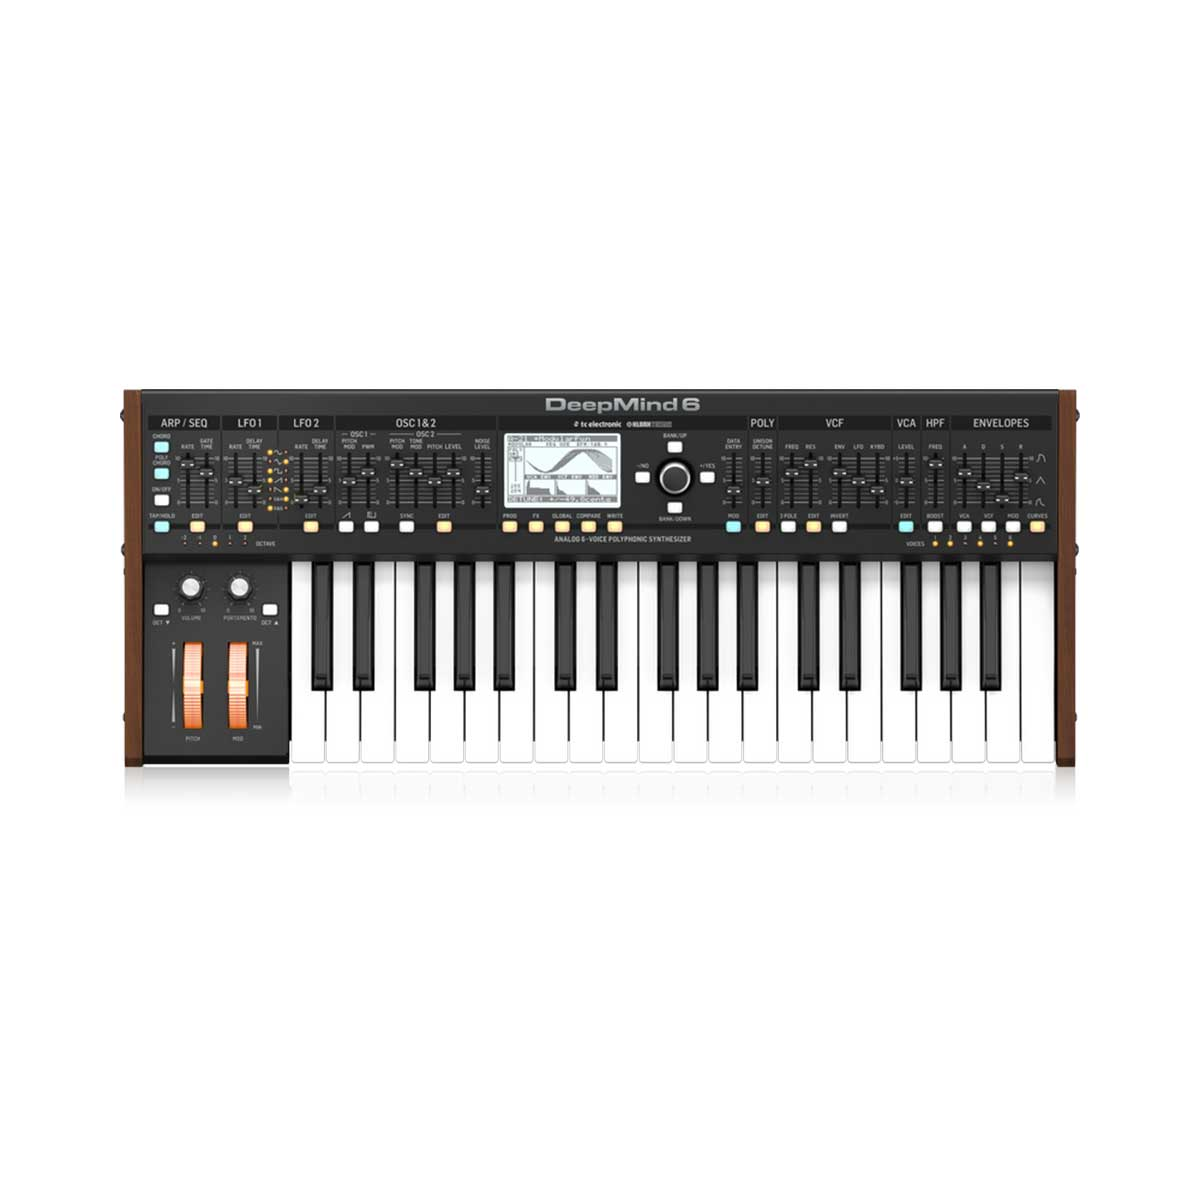 Behringer Deepmind 6 Polyphonic Synthesizer